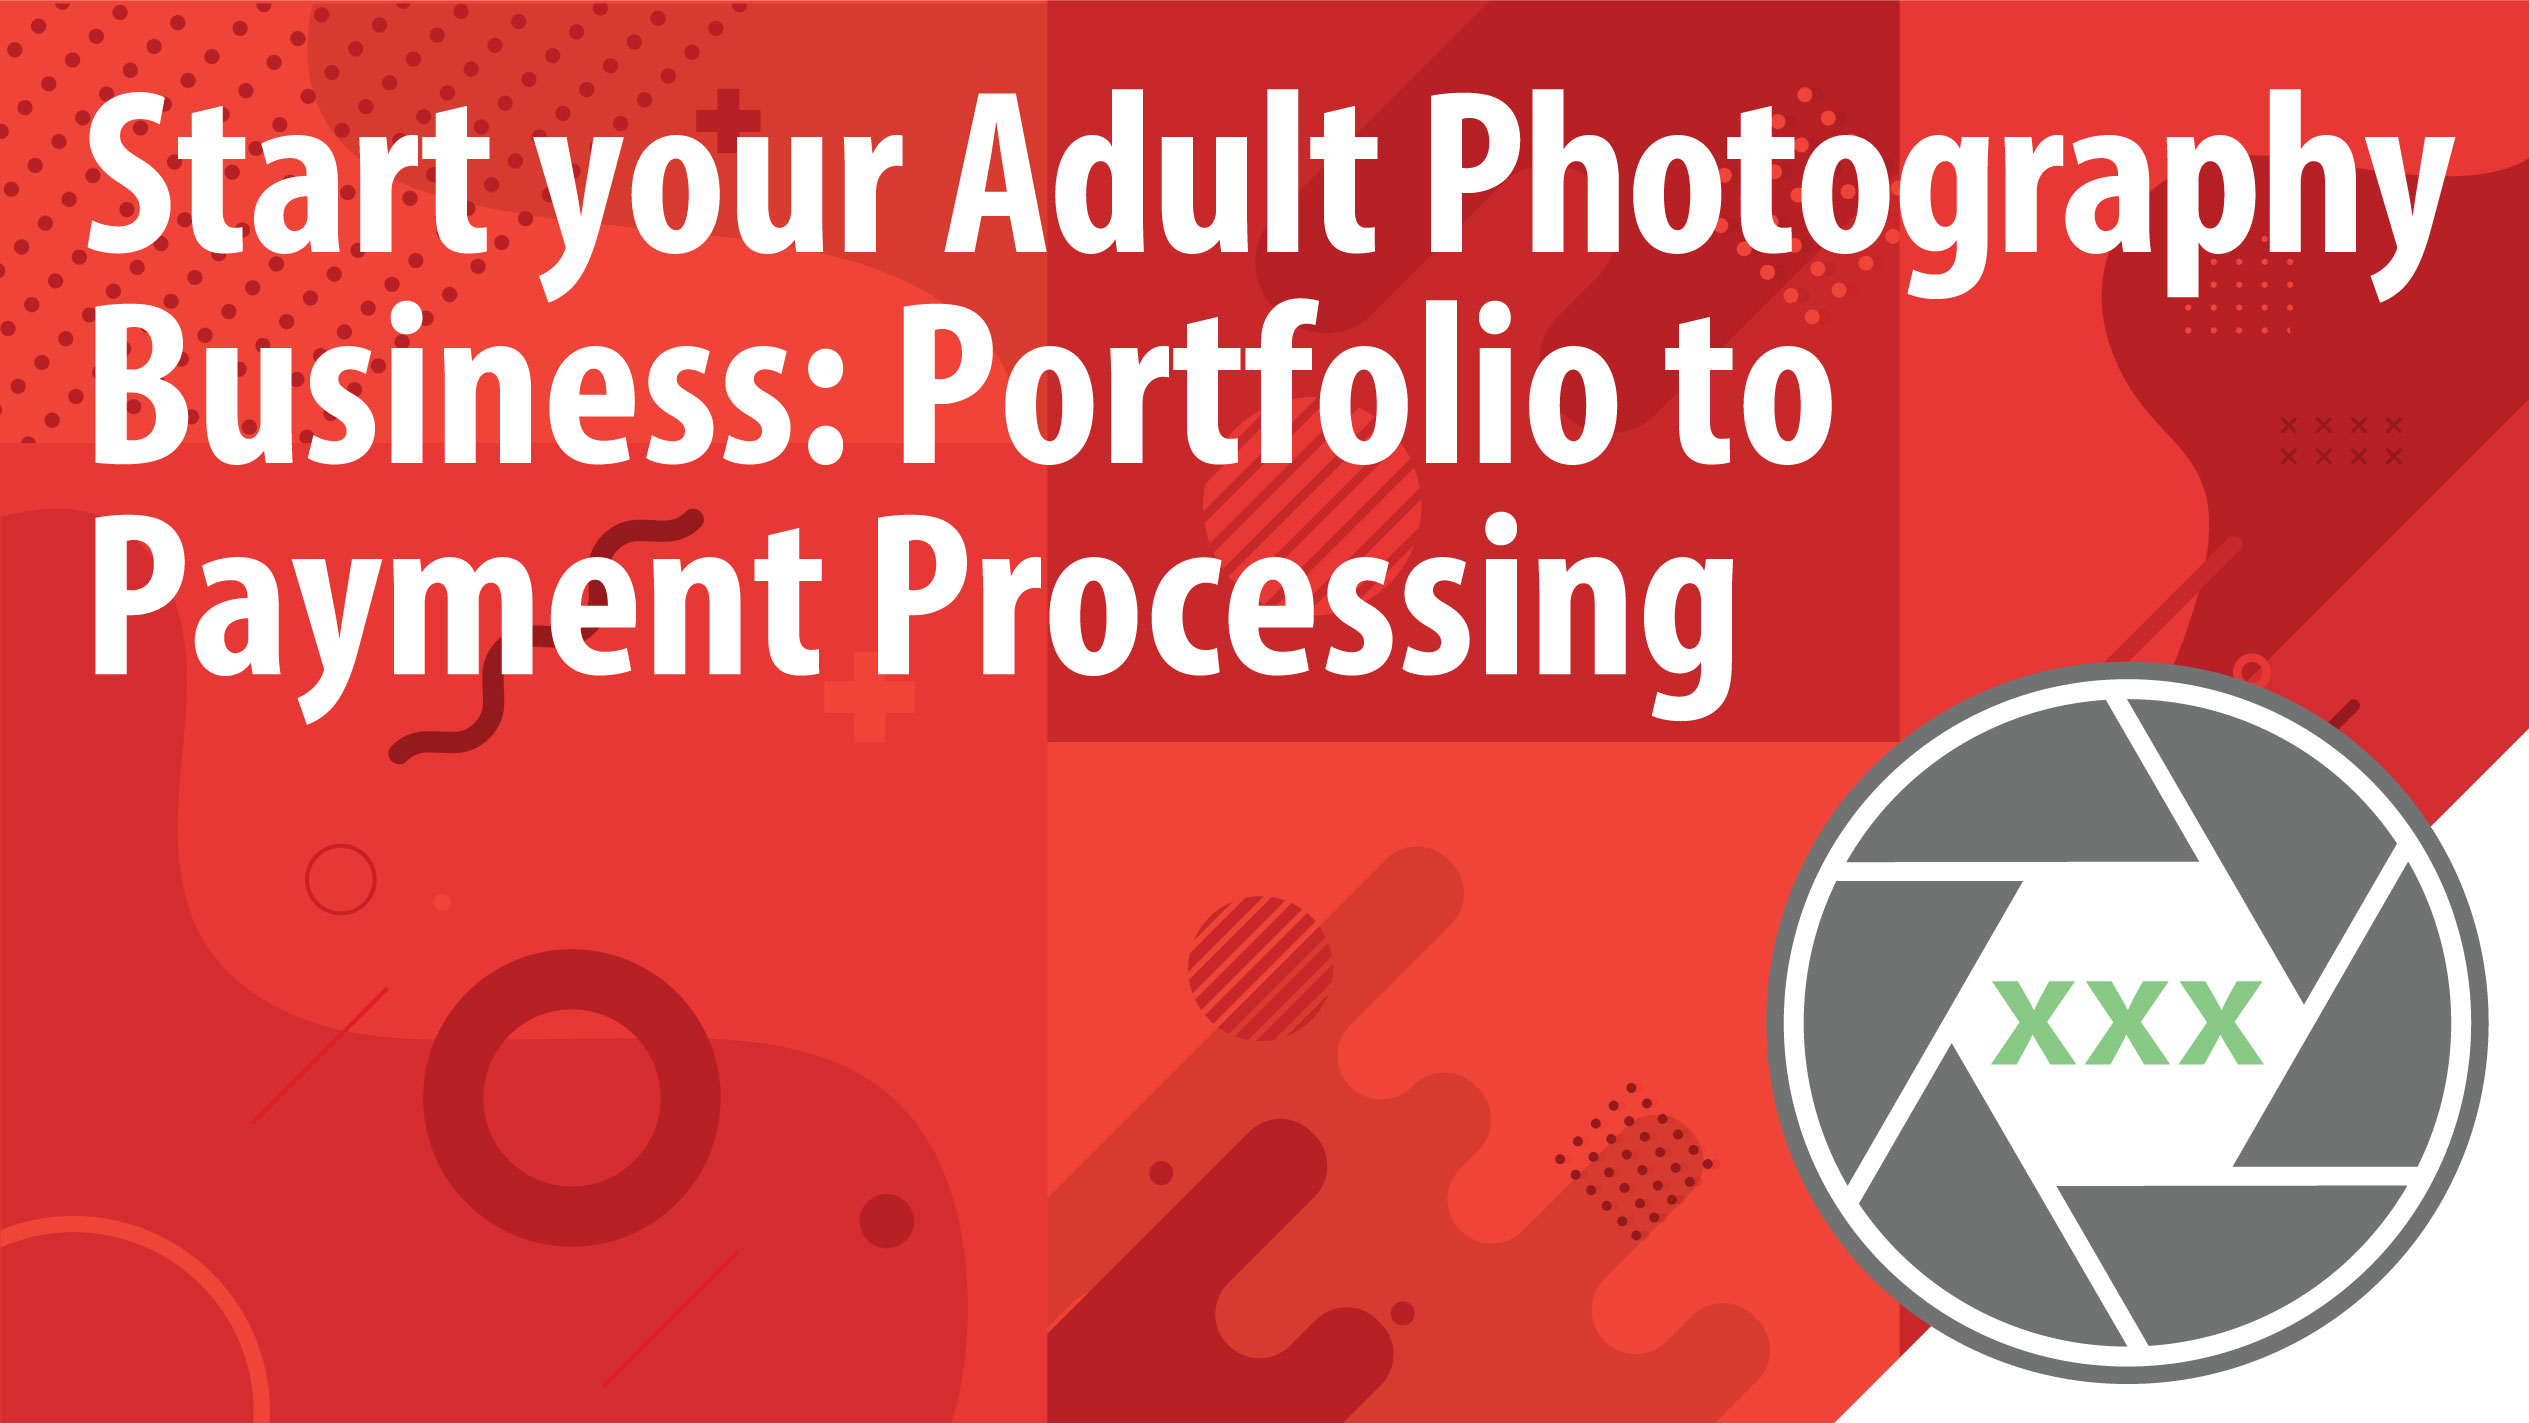 Start your Adult Photography Business: Portfolio to Payment Processing